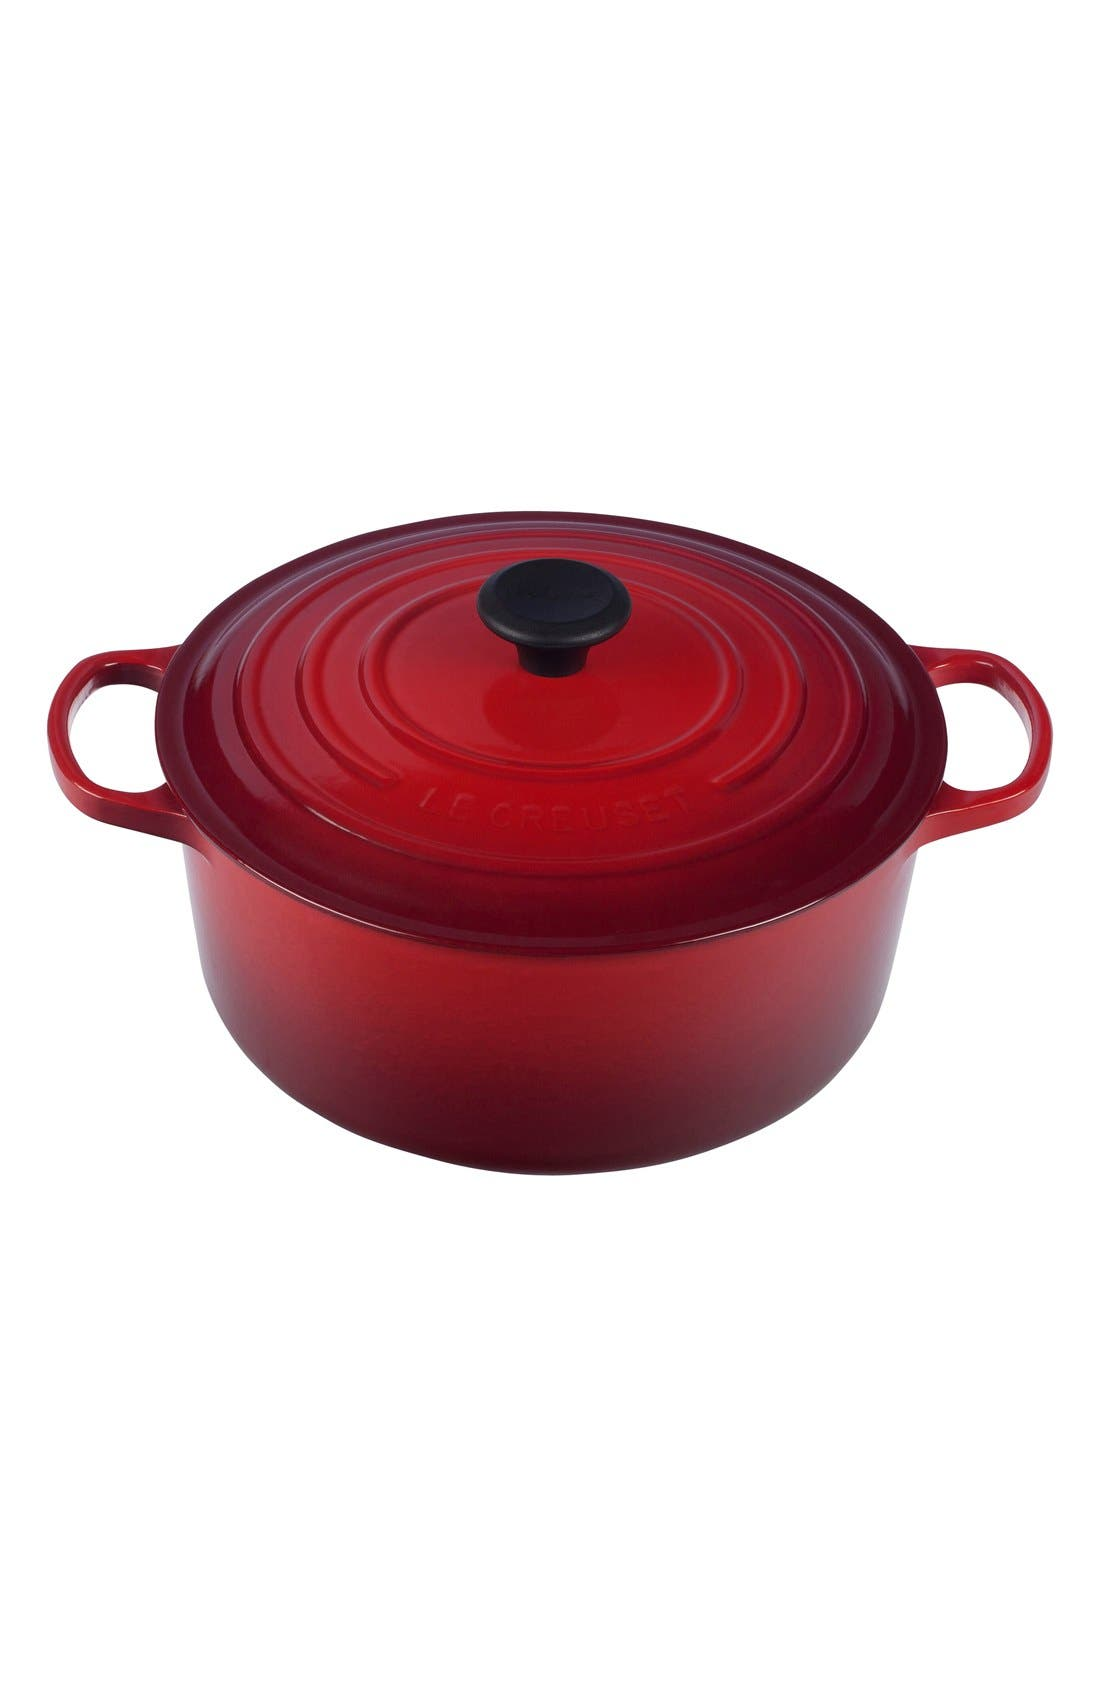 Signature 7 1/4 Quart Round Enamel Cast Iron French/Dutch Oven,                         Main,                         color, Cherry